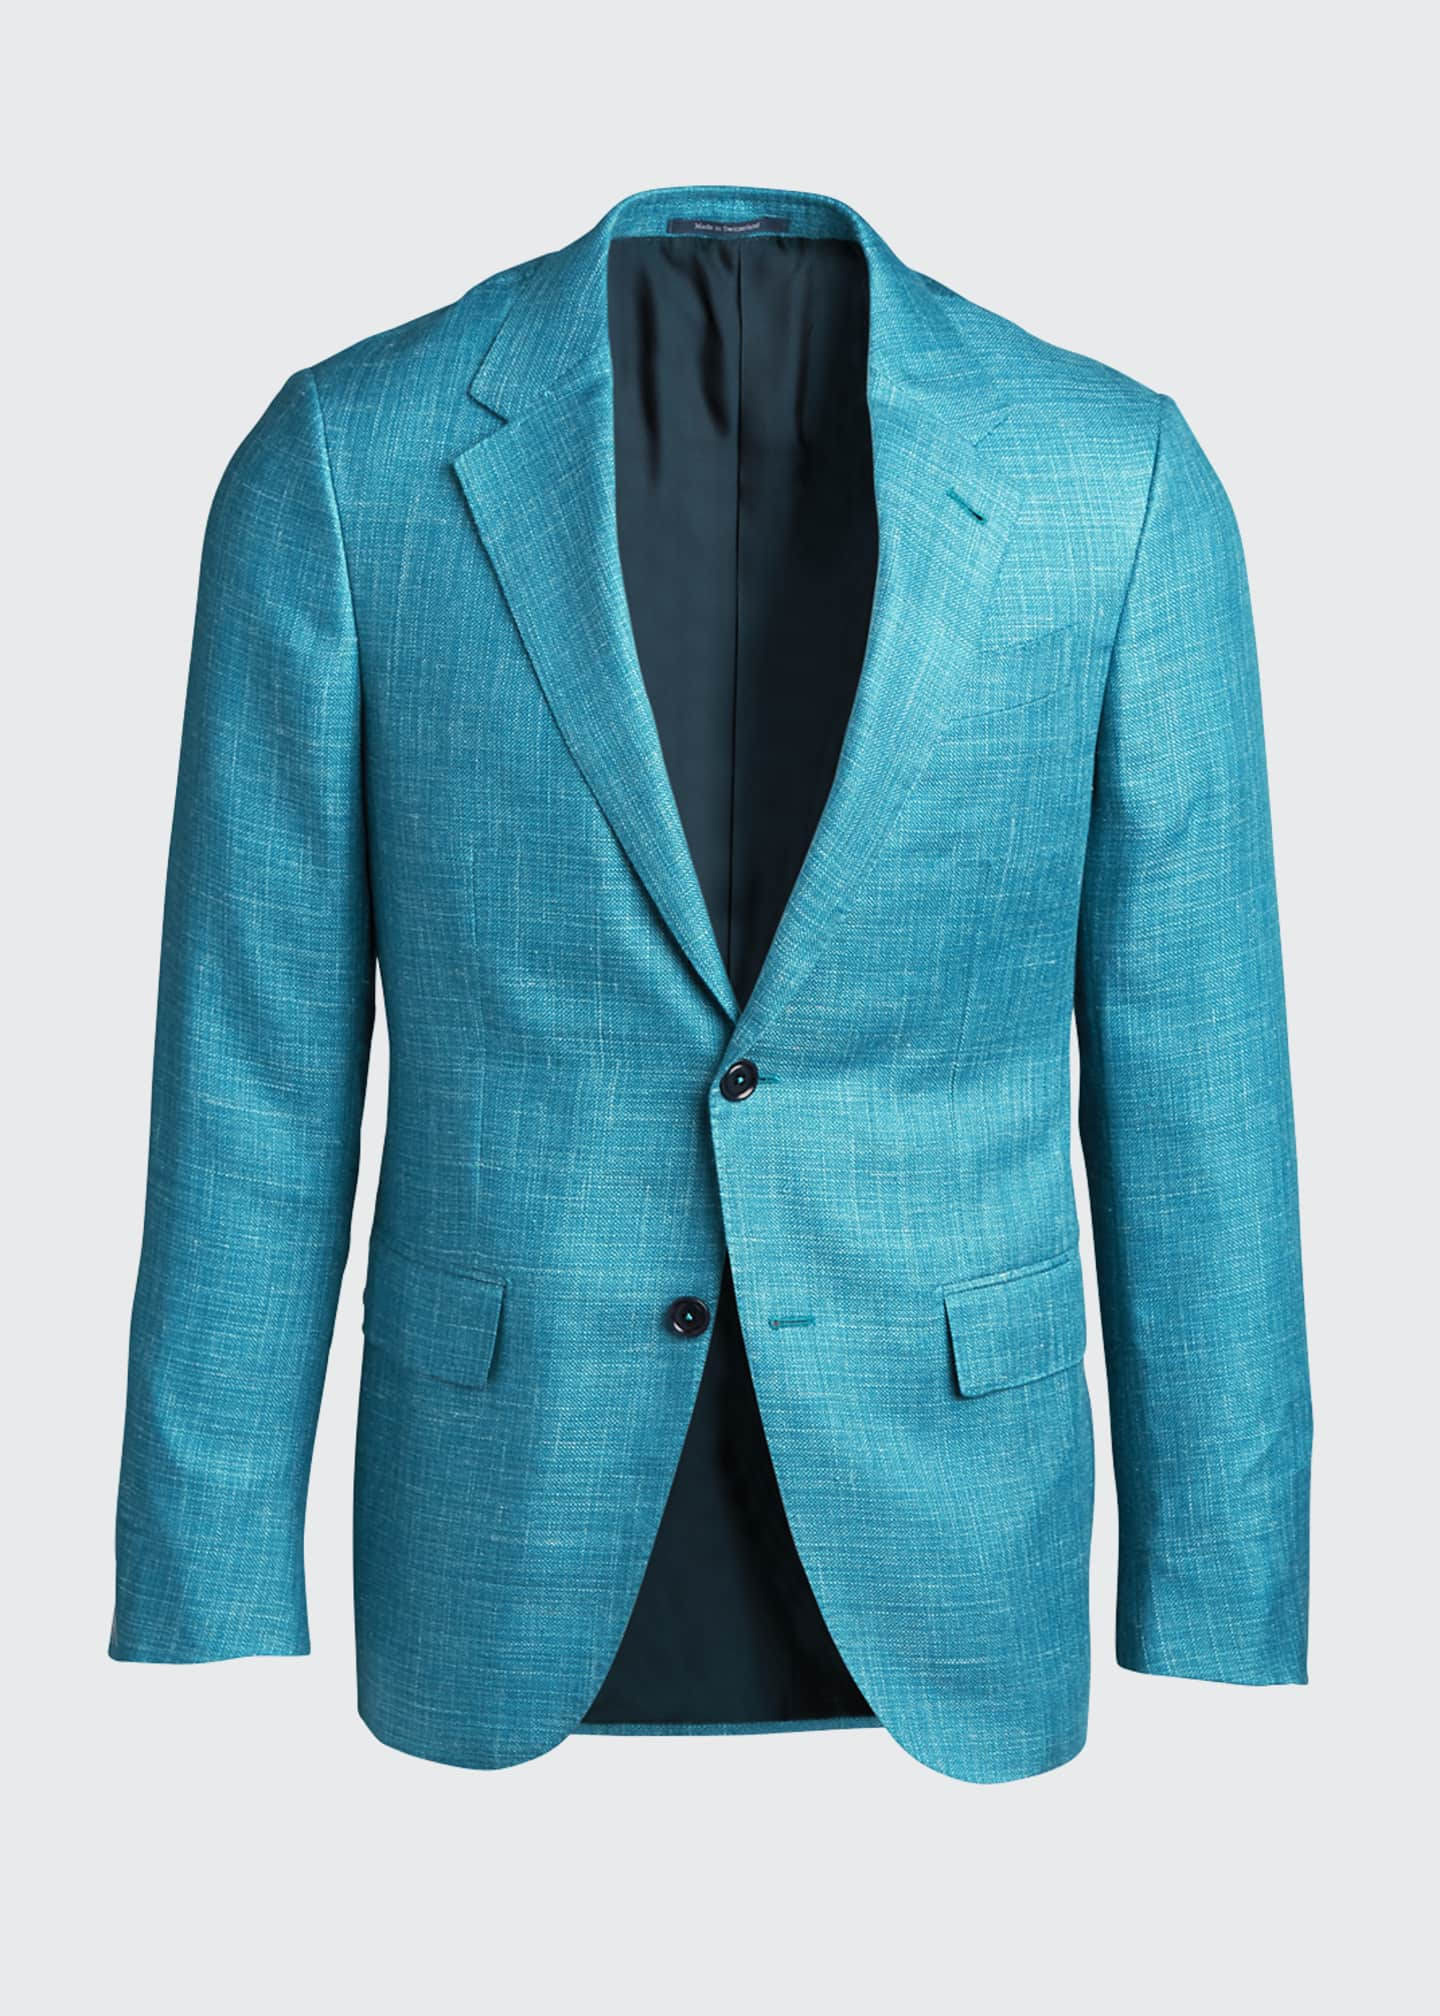 Image 5 of 5: Men's Textured Solid Two-Button Regular-Fit Jacket